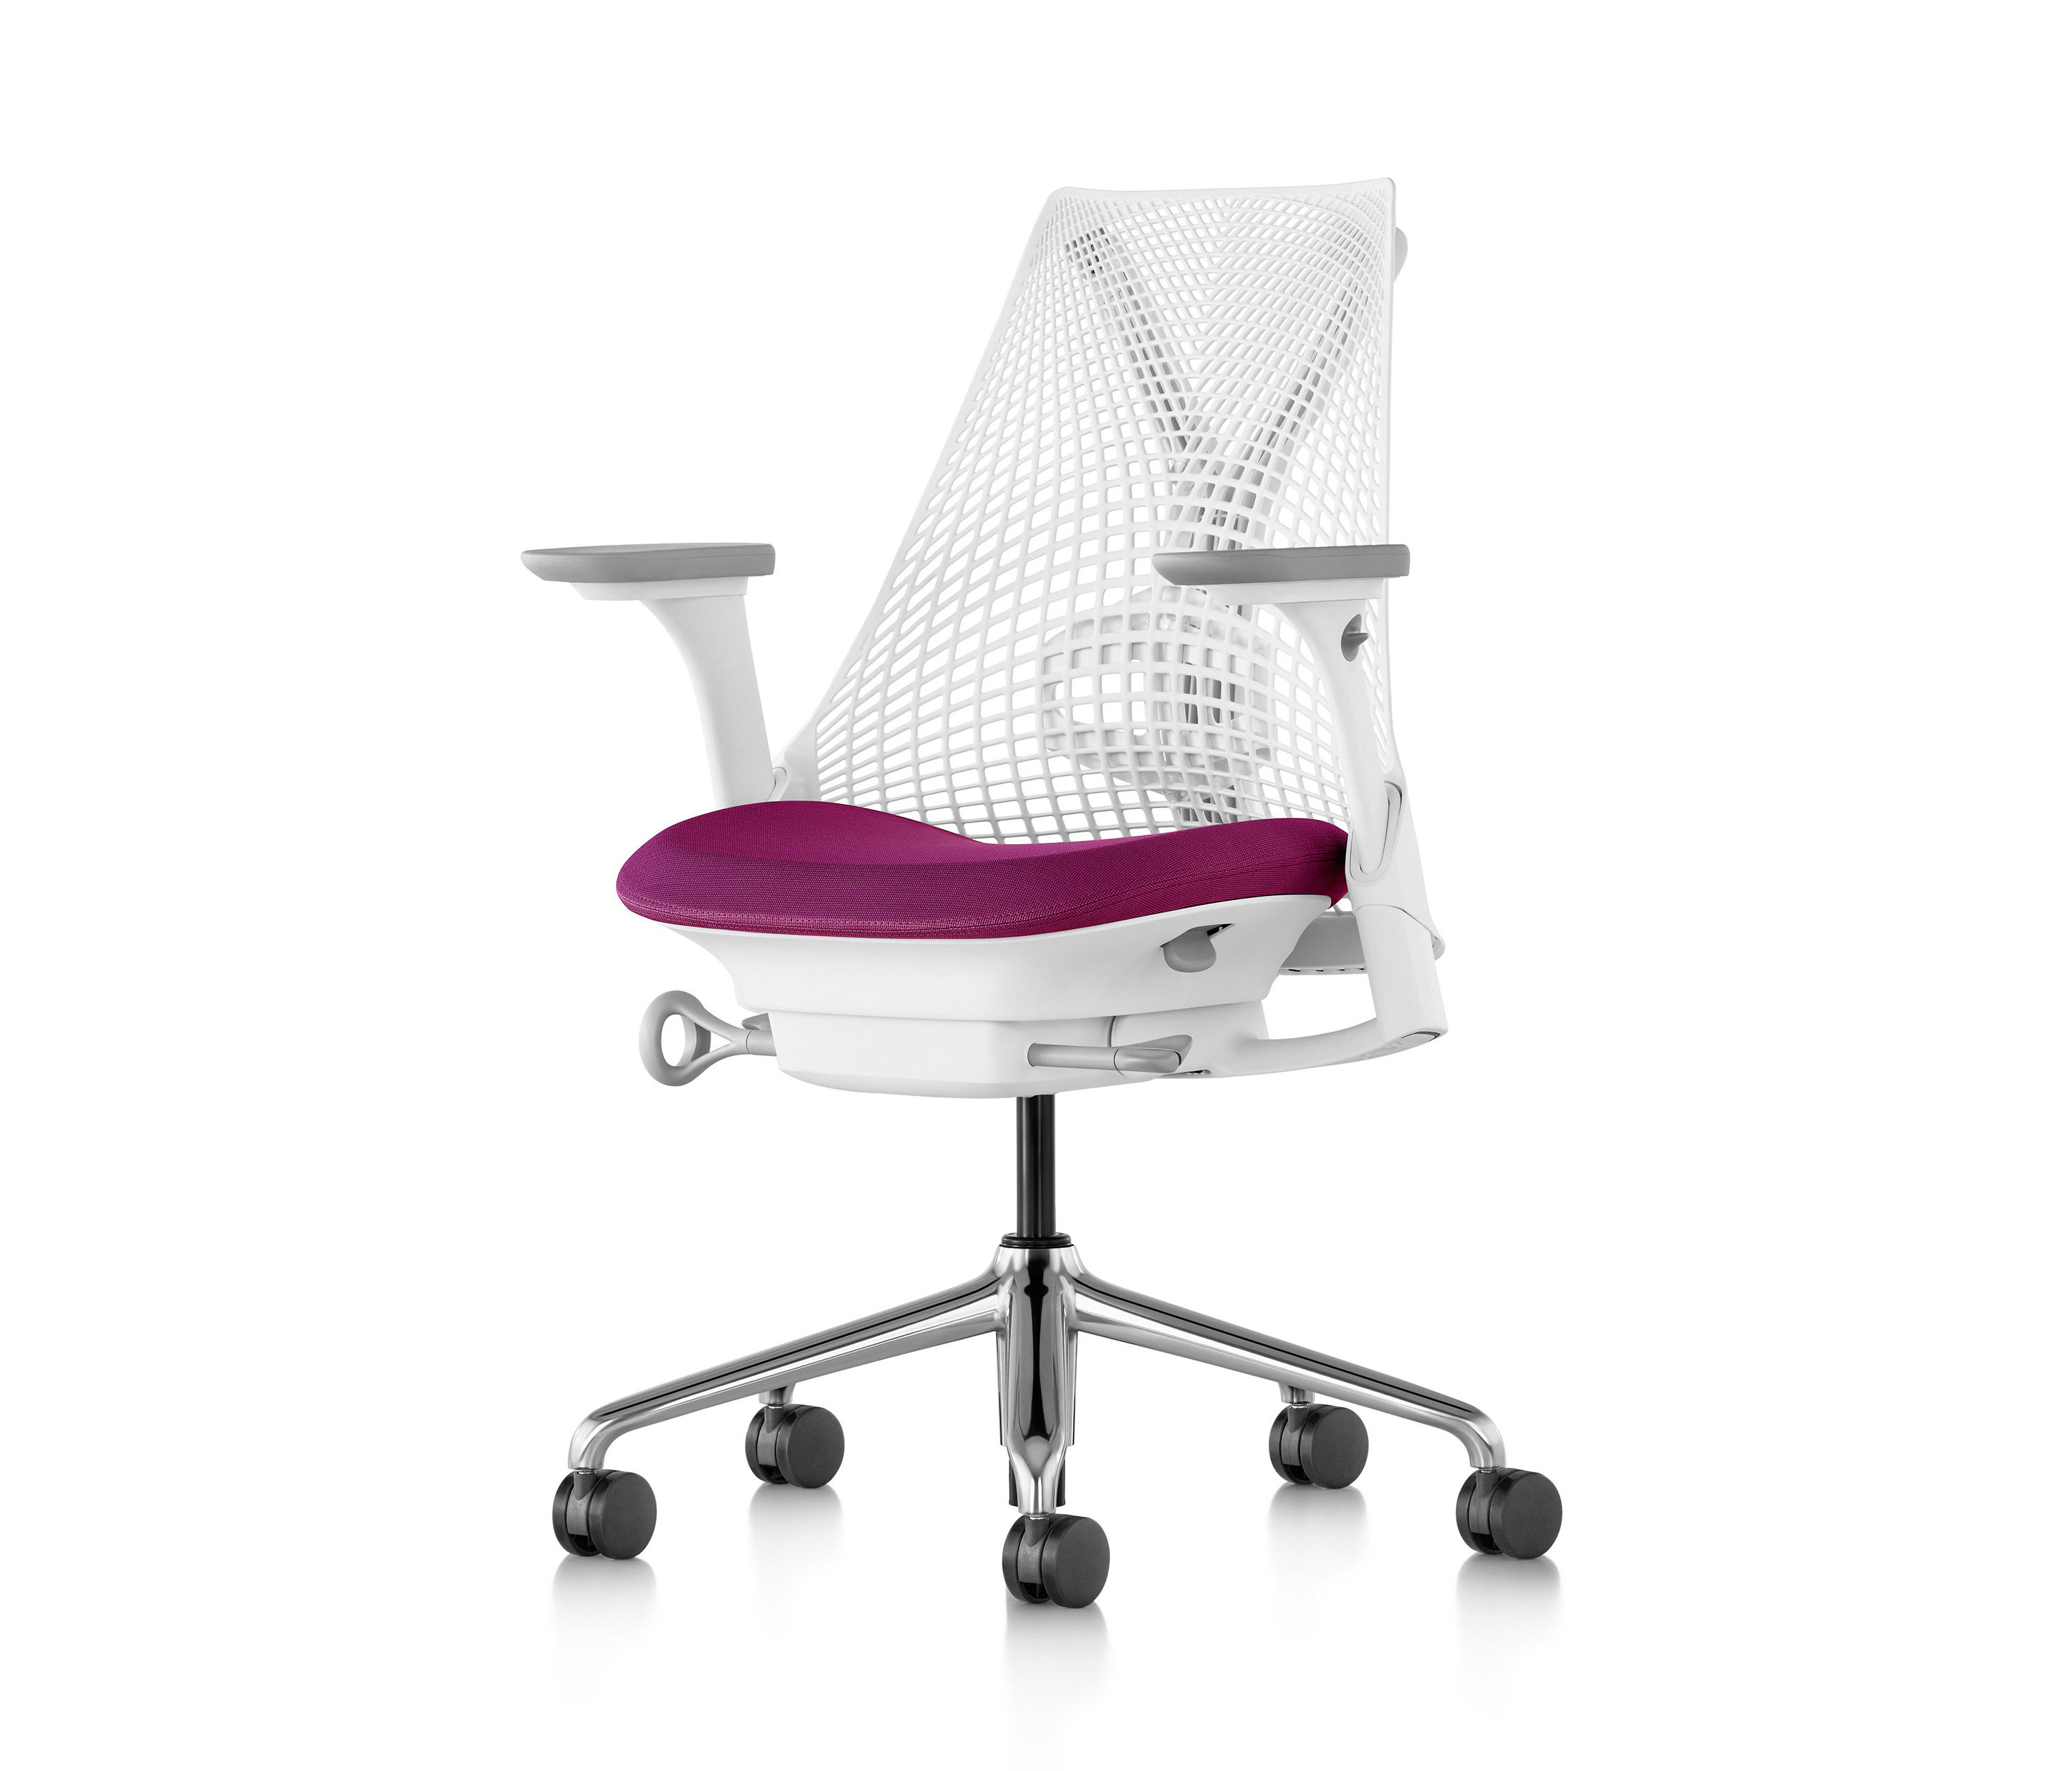 SAYL CHAIR Task Chairs From Herman Miller Architonic - Sayl chair